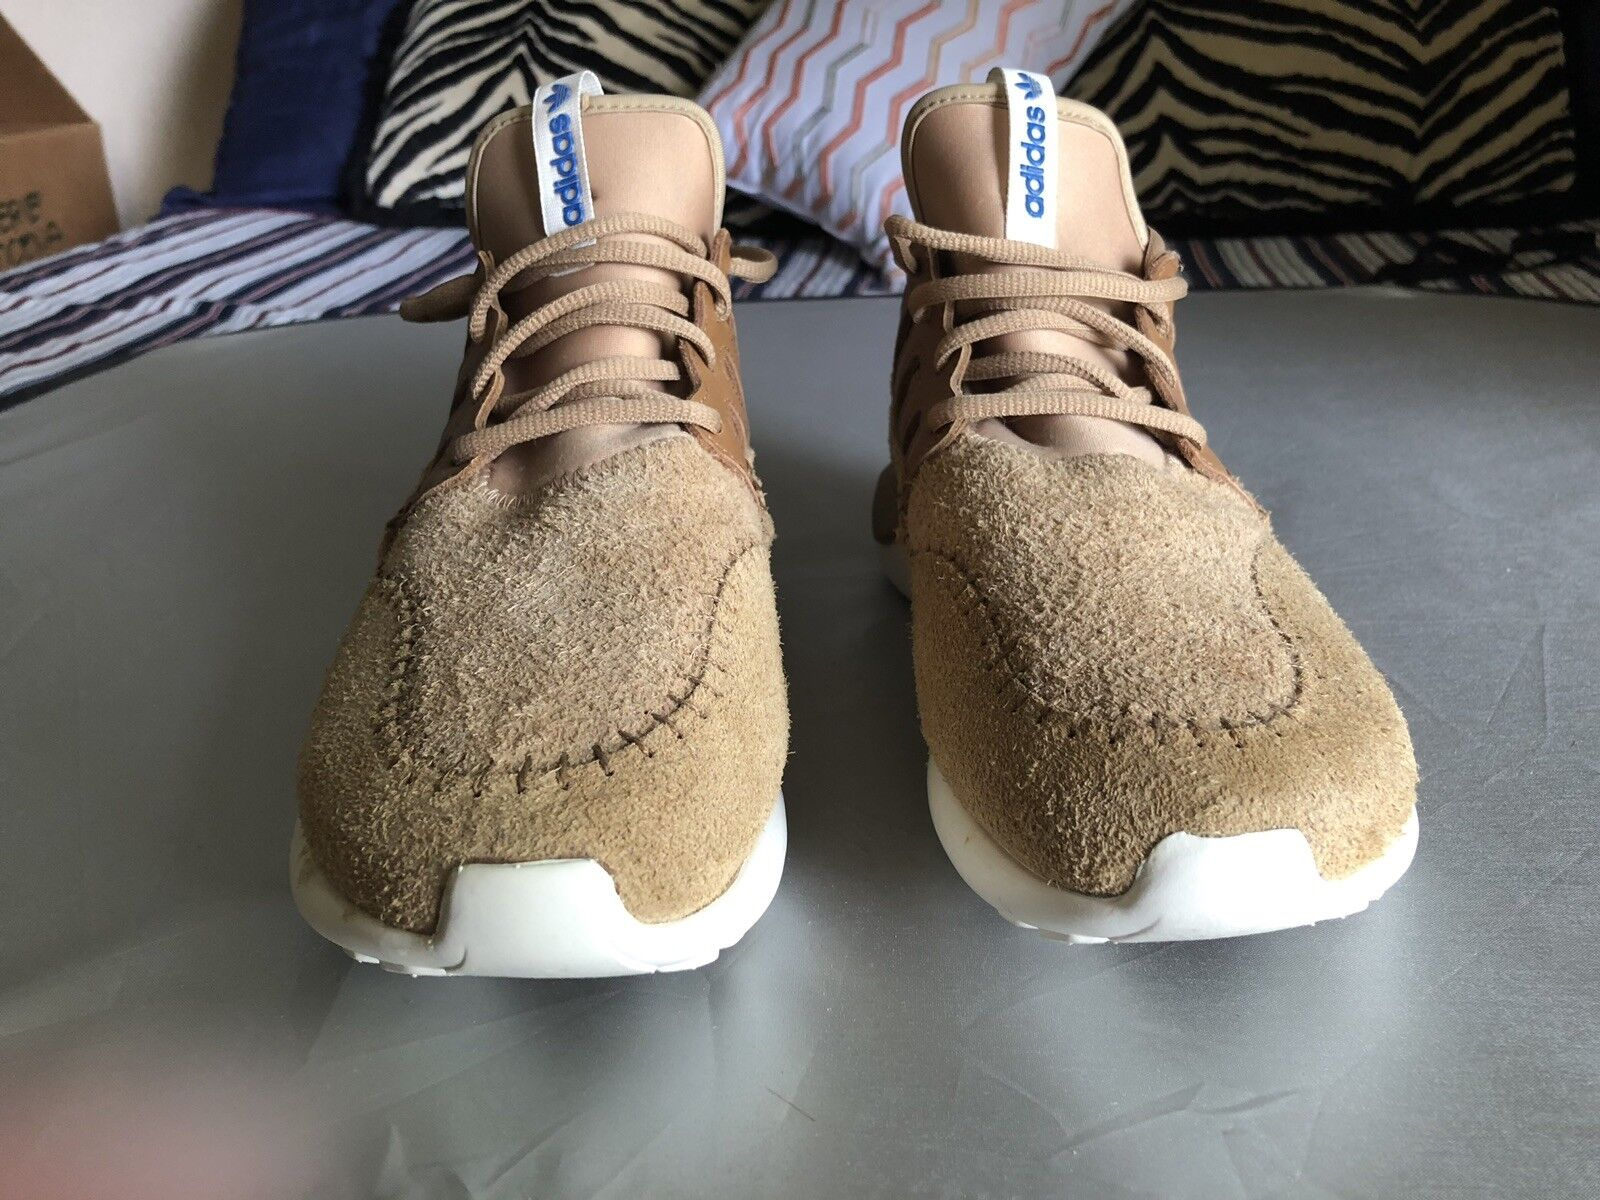 VNDS Adidas Tubular Moc Runner Brown Beige Size 7.5 wheat